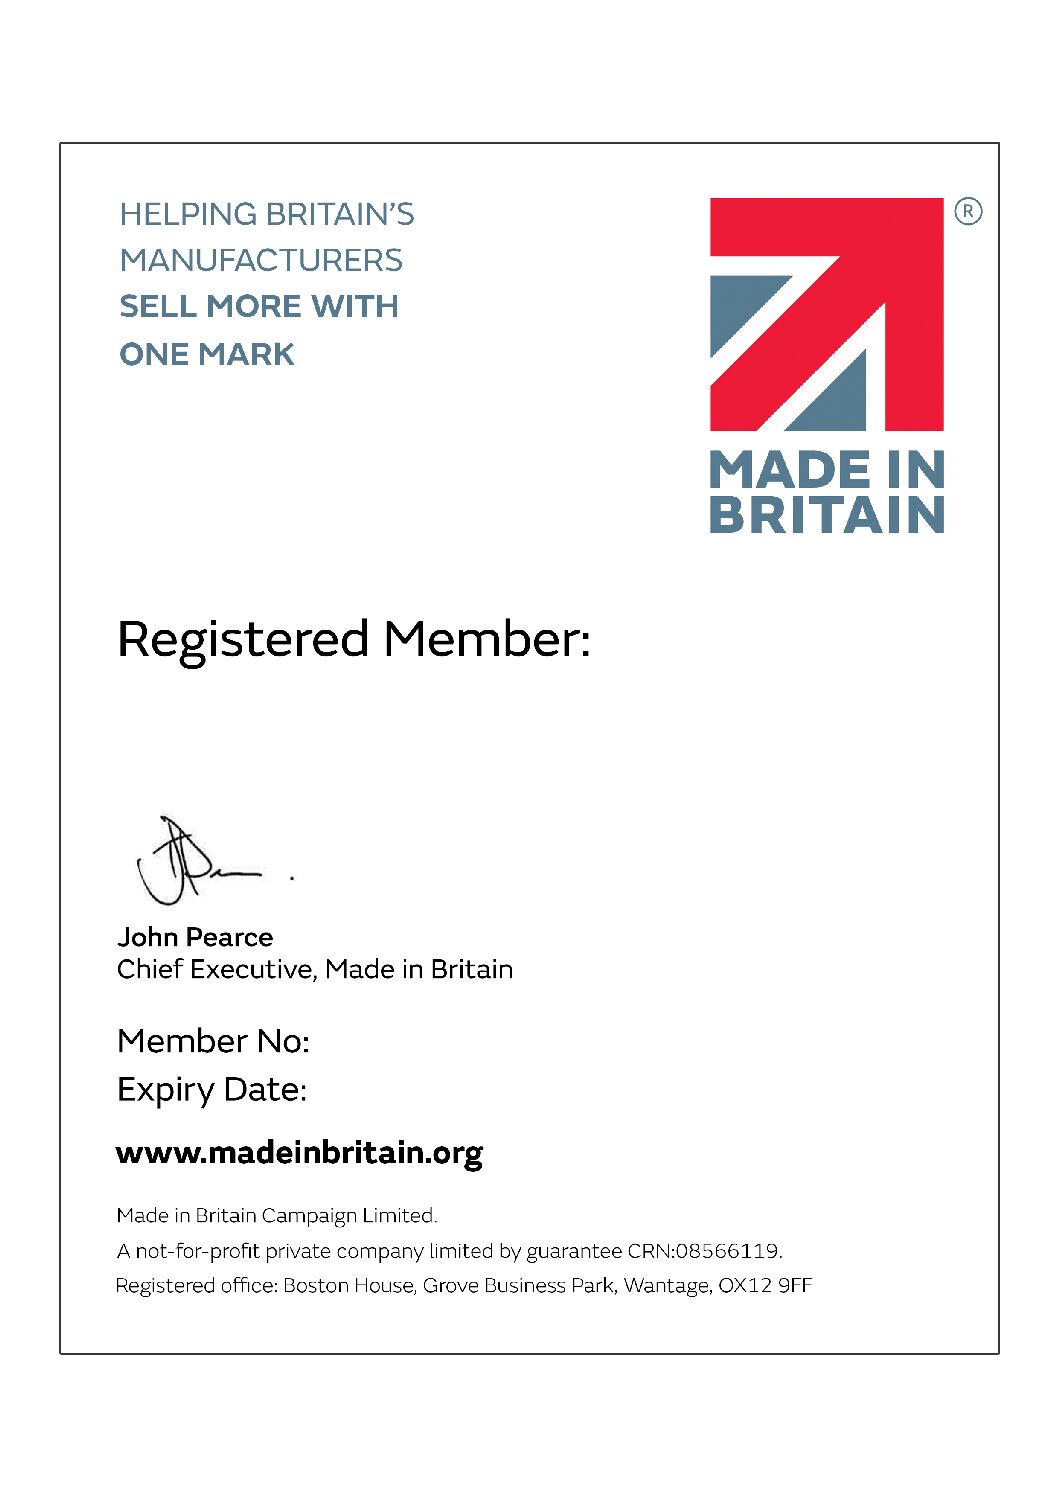 We are now members of Made In Britain